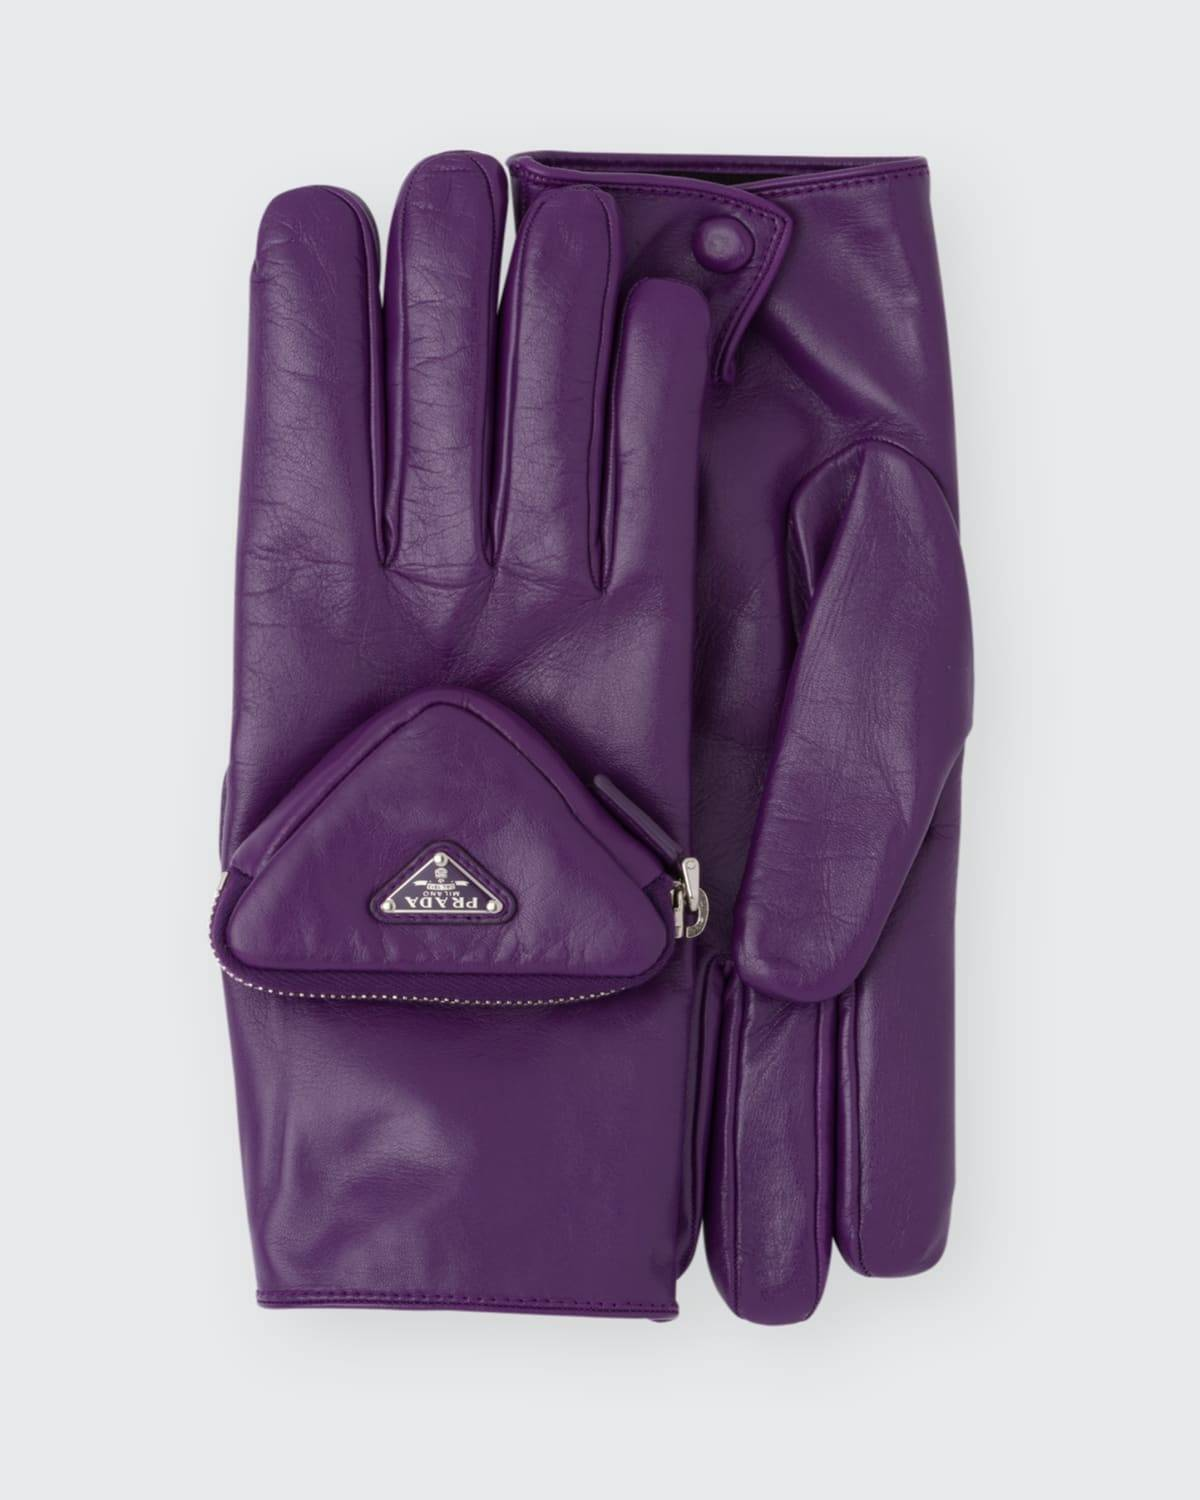 Prada Men's Fashion Show Leather Gloves With Pocket  - F0106 CICLAMINO - F0106 CICLAMINO - Size: 8IN